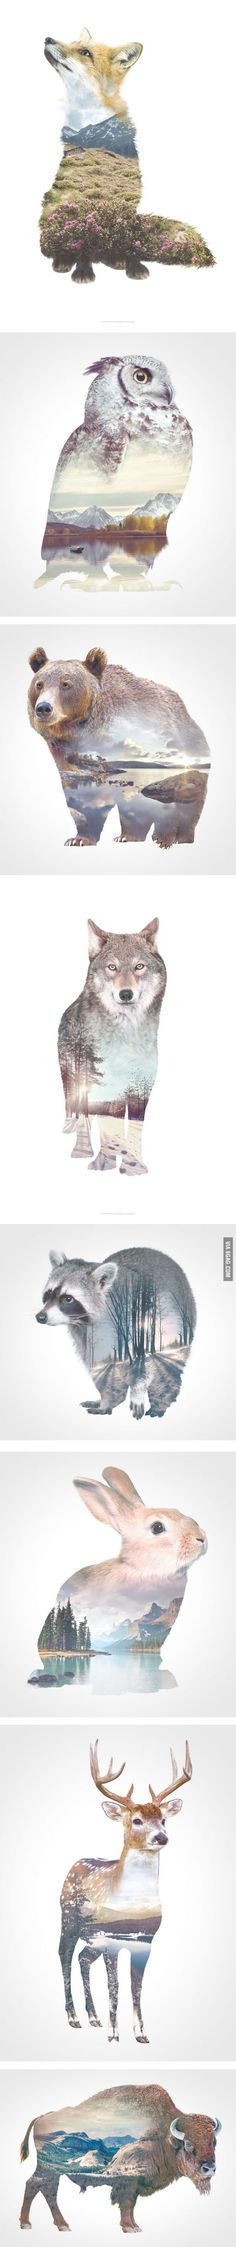 Incredible Double-Exposure Animal Portraits - 9GAG